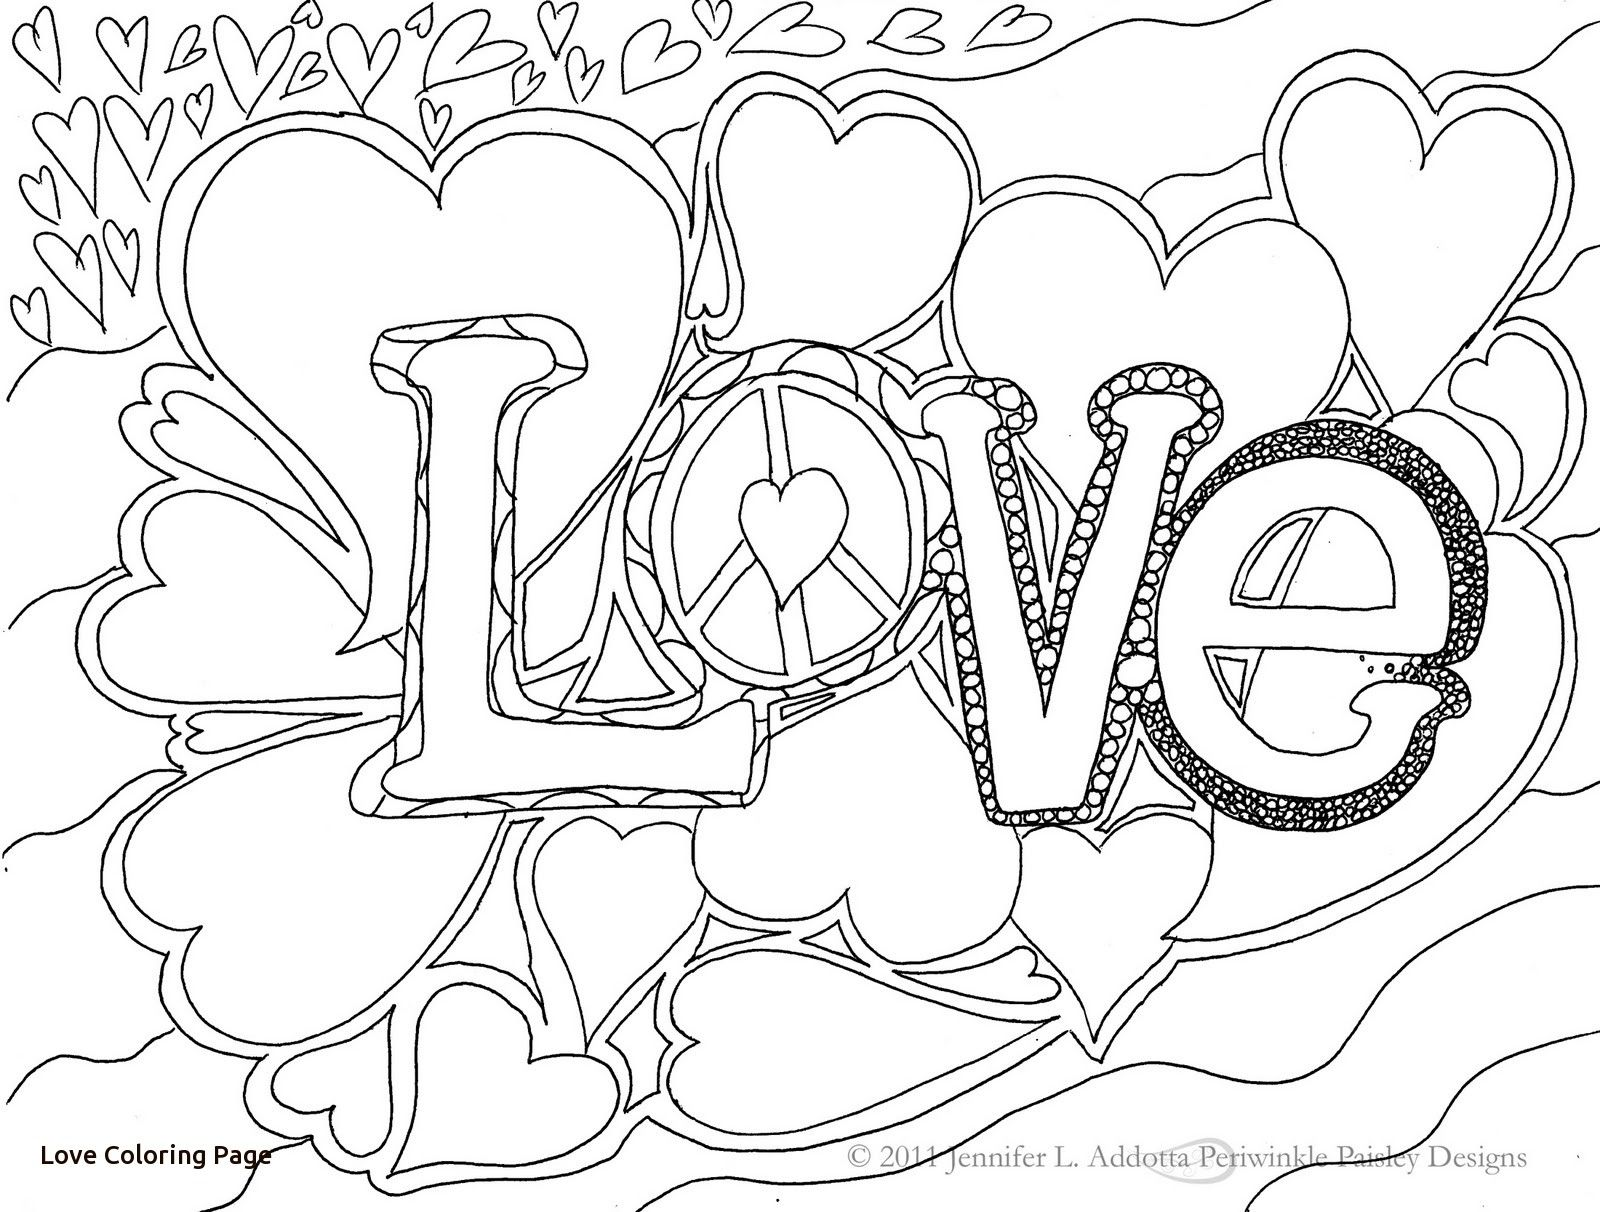 Love Coloring Pages Printable Free Coloring Pages Download | Xsibe ...